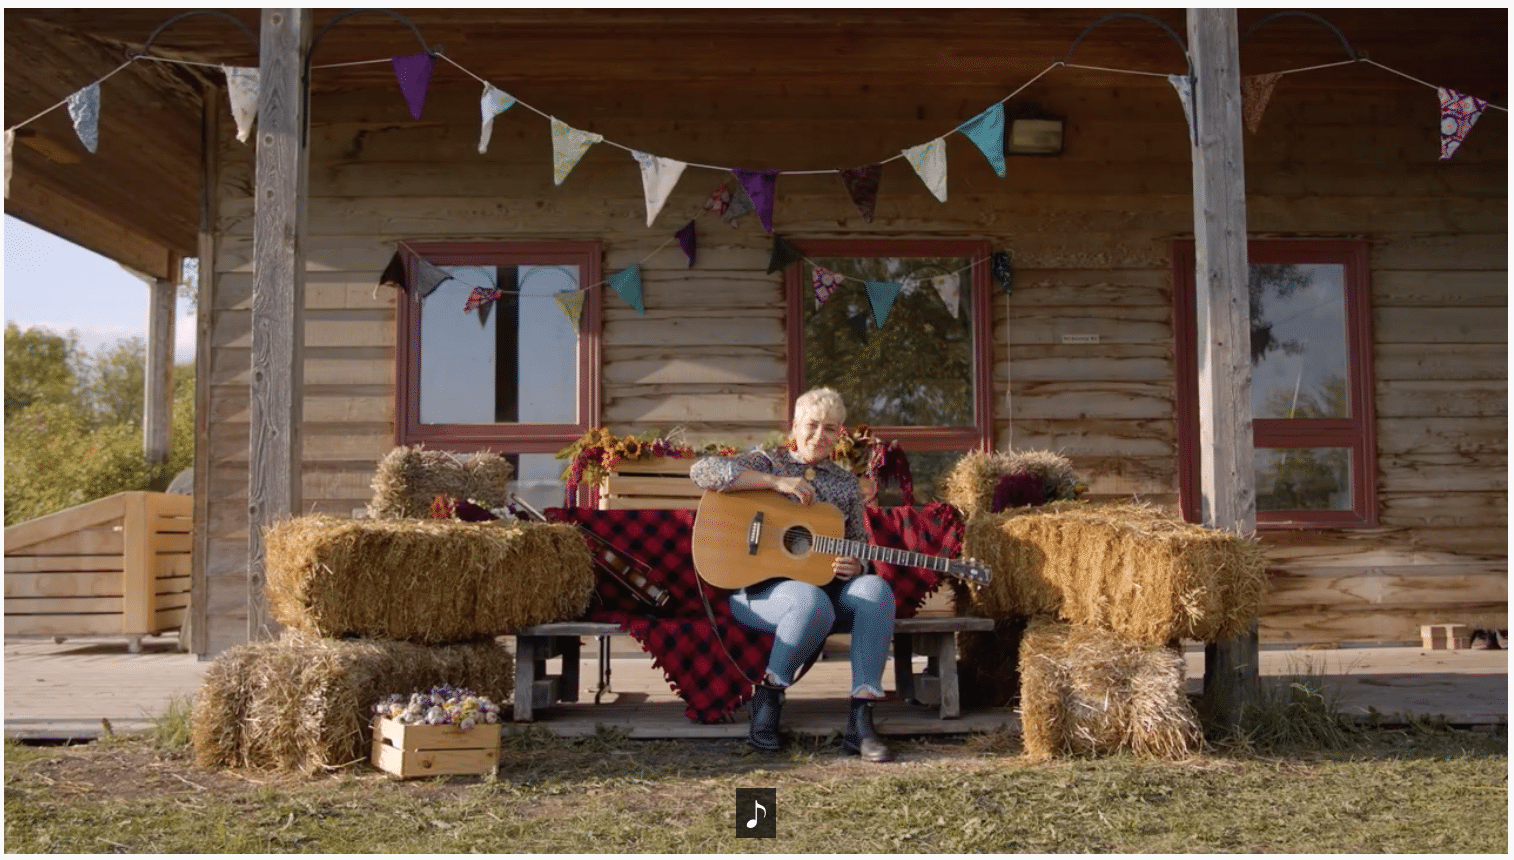 Sierra Noble plays their guitar sitting on the bench, surrounded by bales of straw and flowers from FortWhyte Farms.